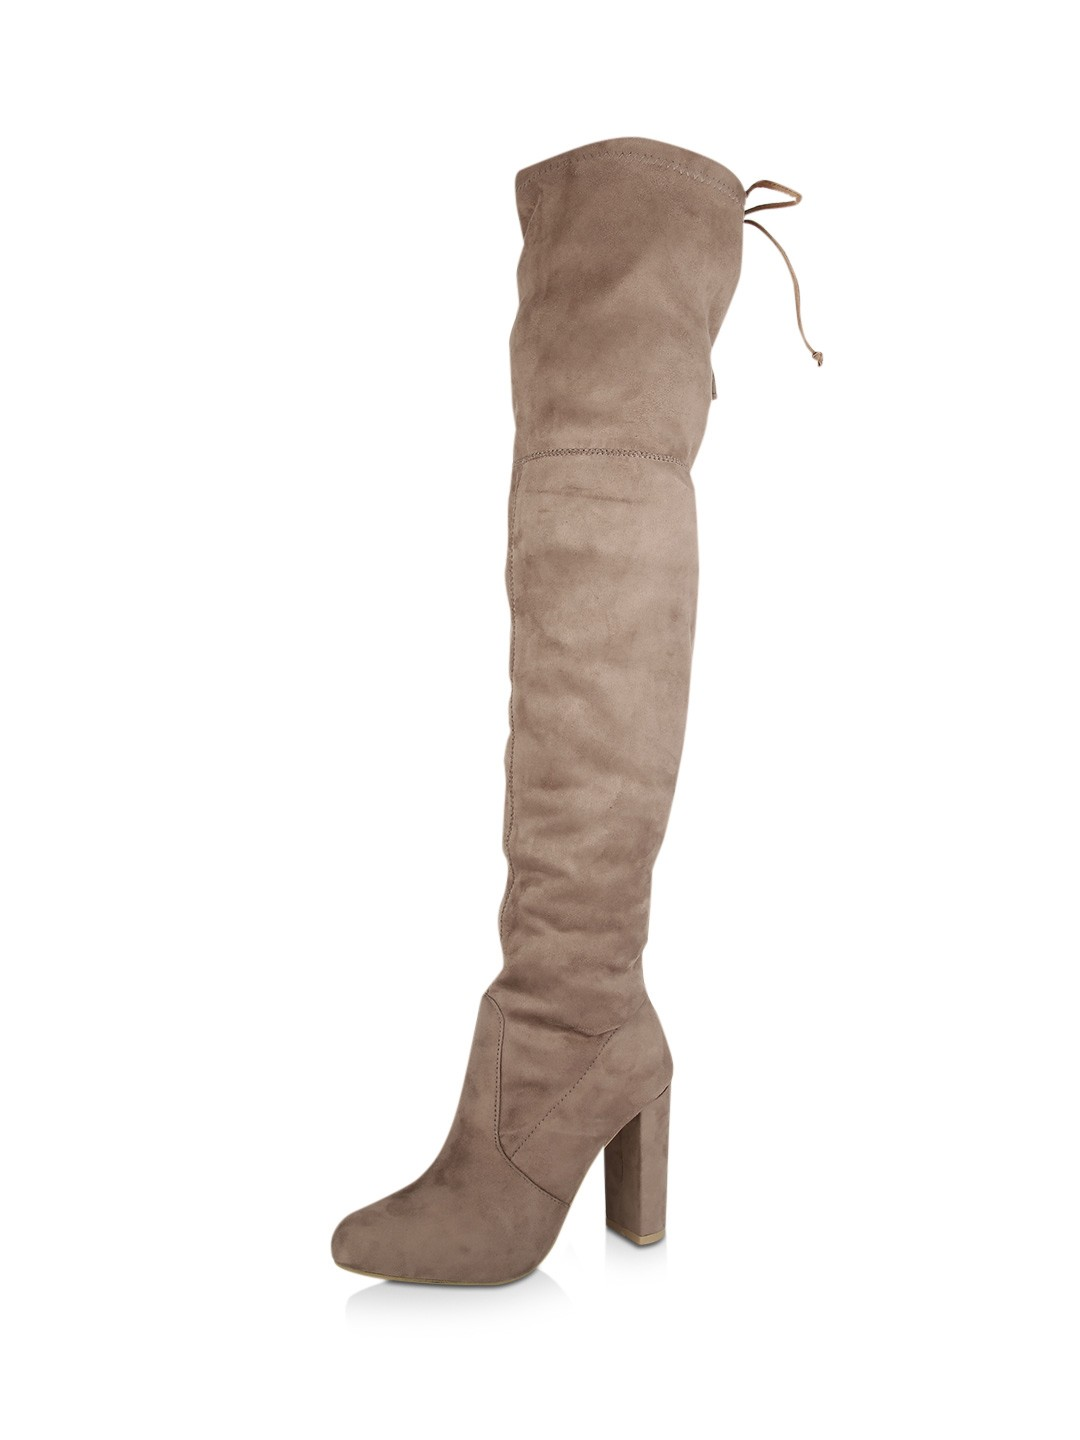 Buy NO DOUBT Knee High Boots For Women - Women's Brown Boots ...